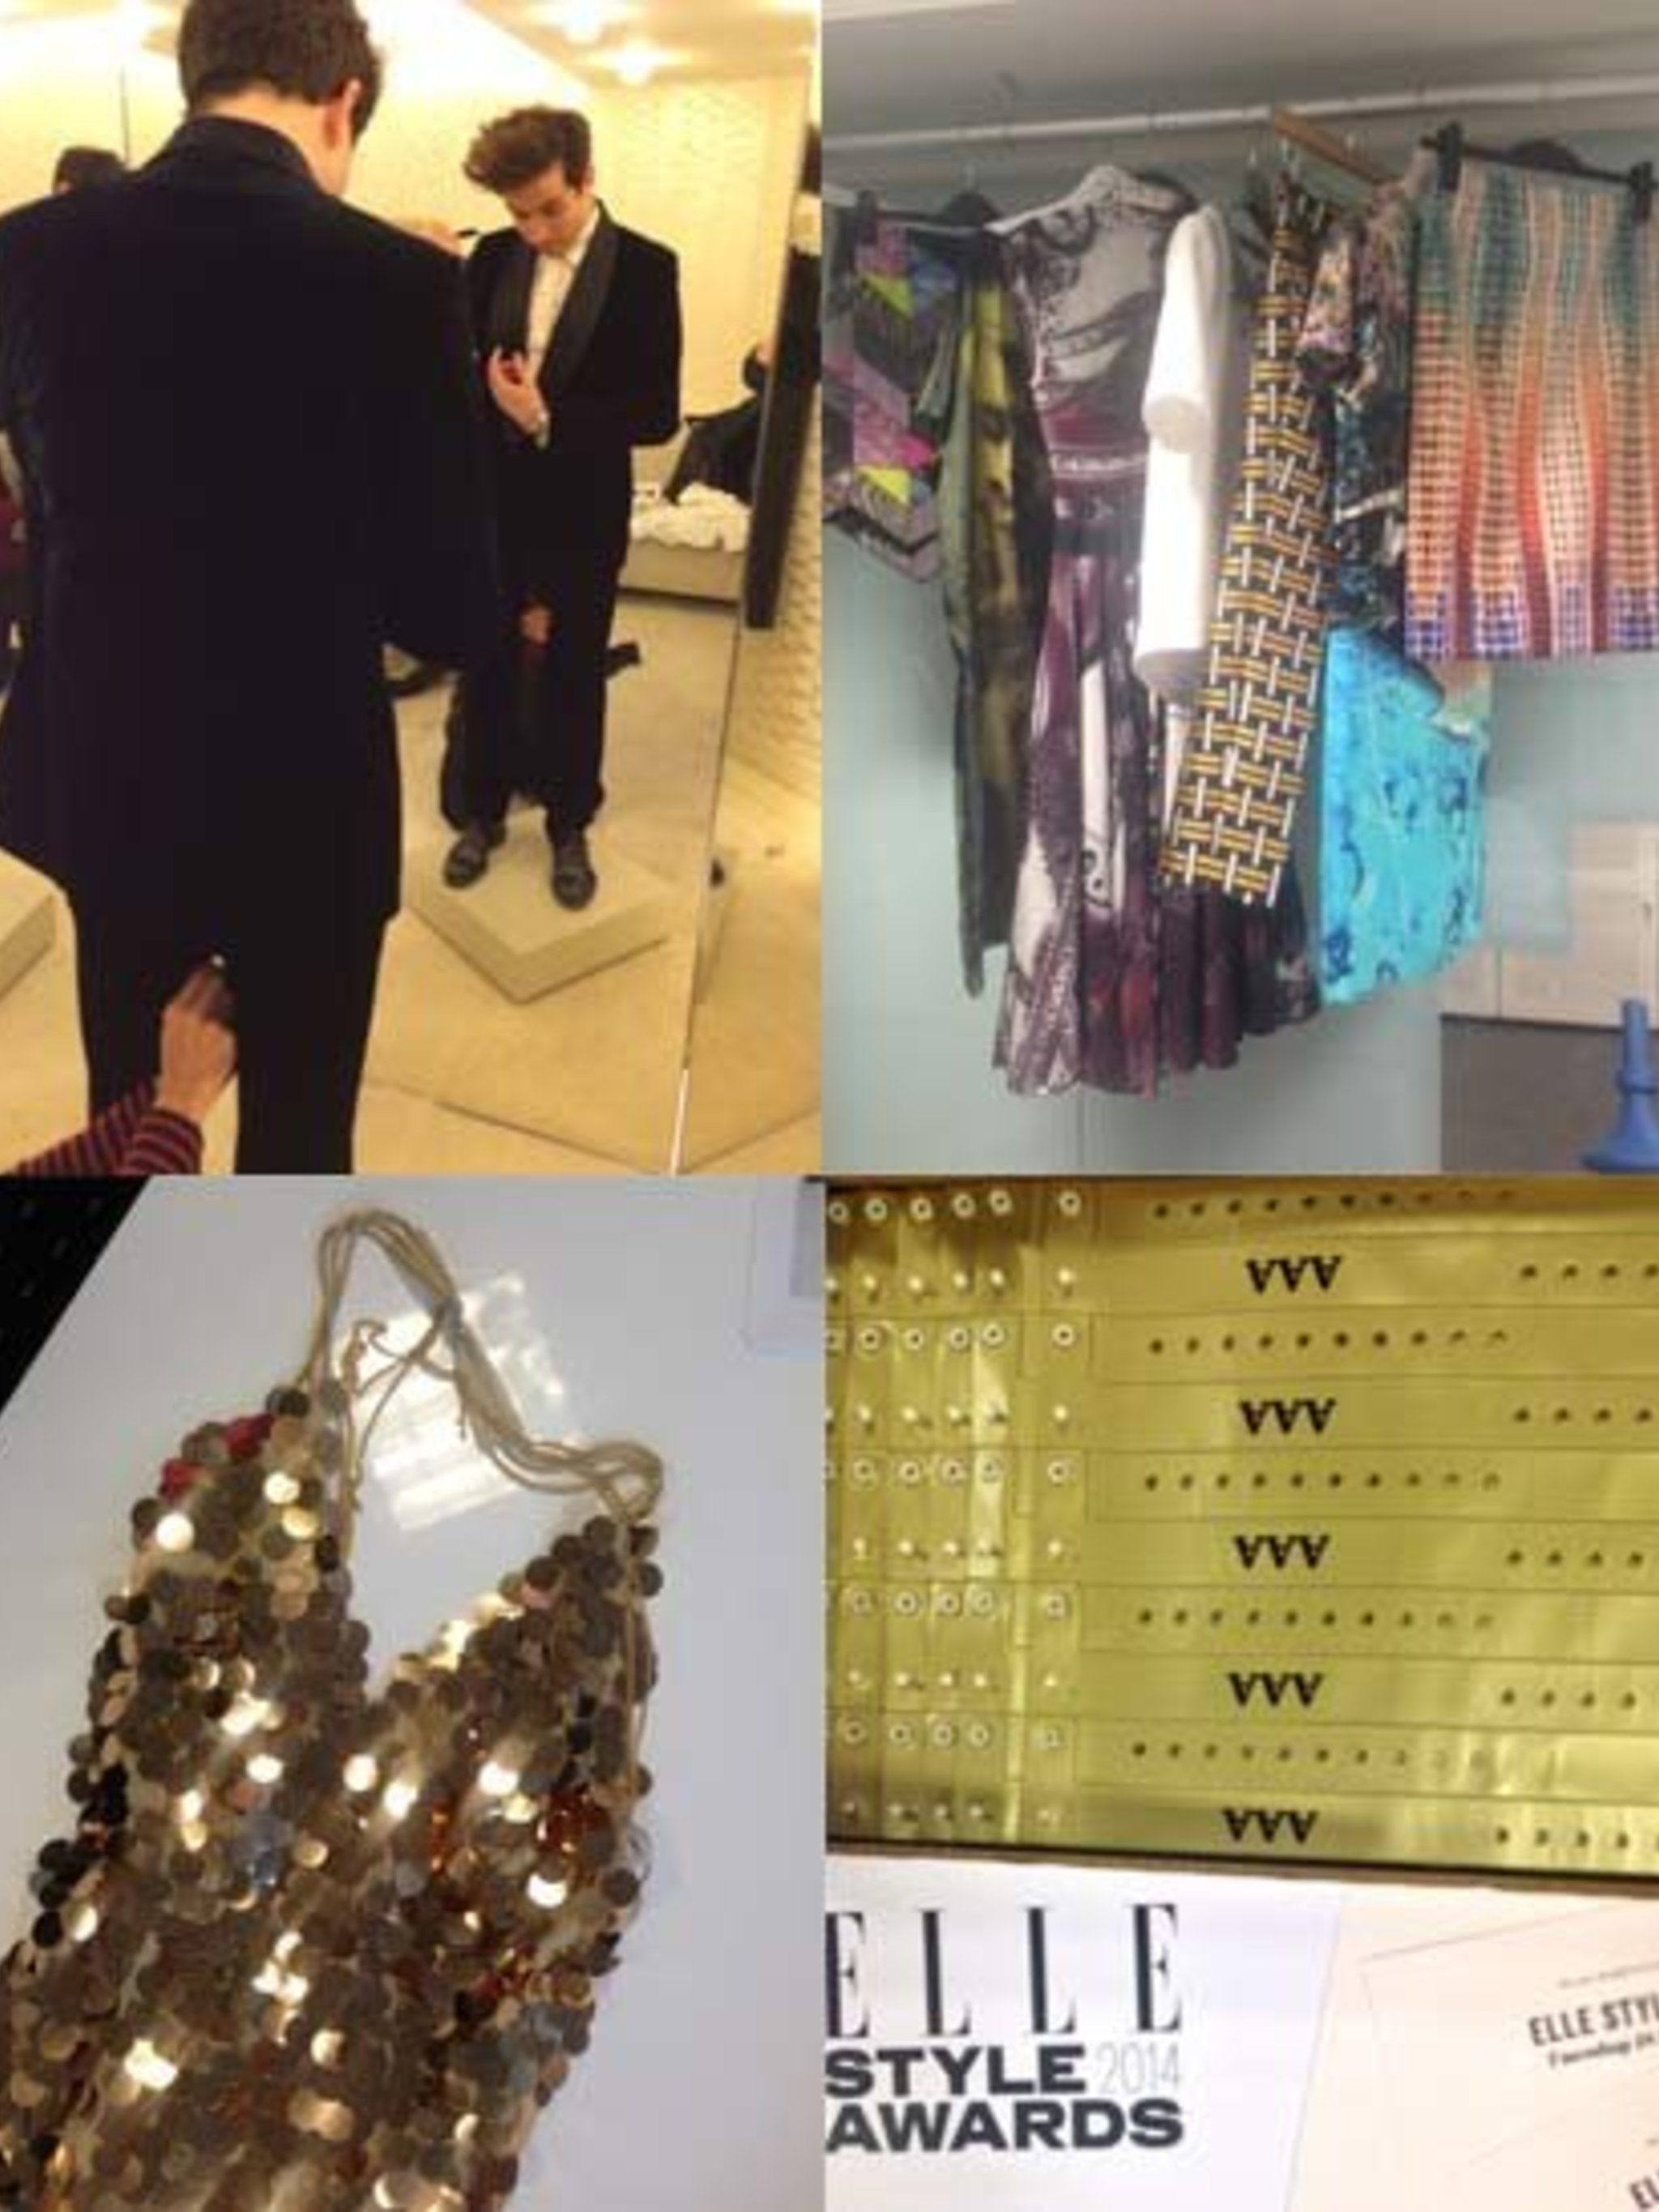 <p>As the week before the ELLE Style Awards draws to a close we put the finishing touches to all the crucial parts: the food, the celebrity dressing, the VIP access and most importantly the DRESSES.</p><p>Here's a sneak-peek at what we've been up to.</p><